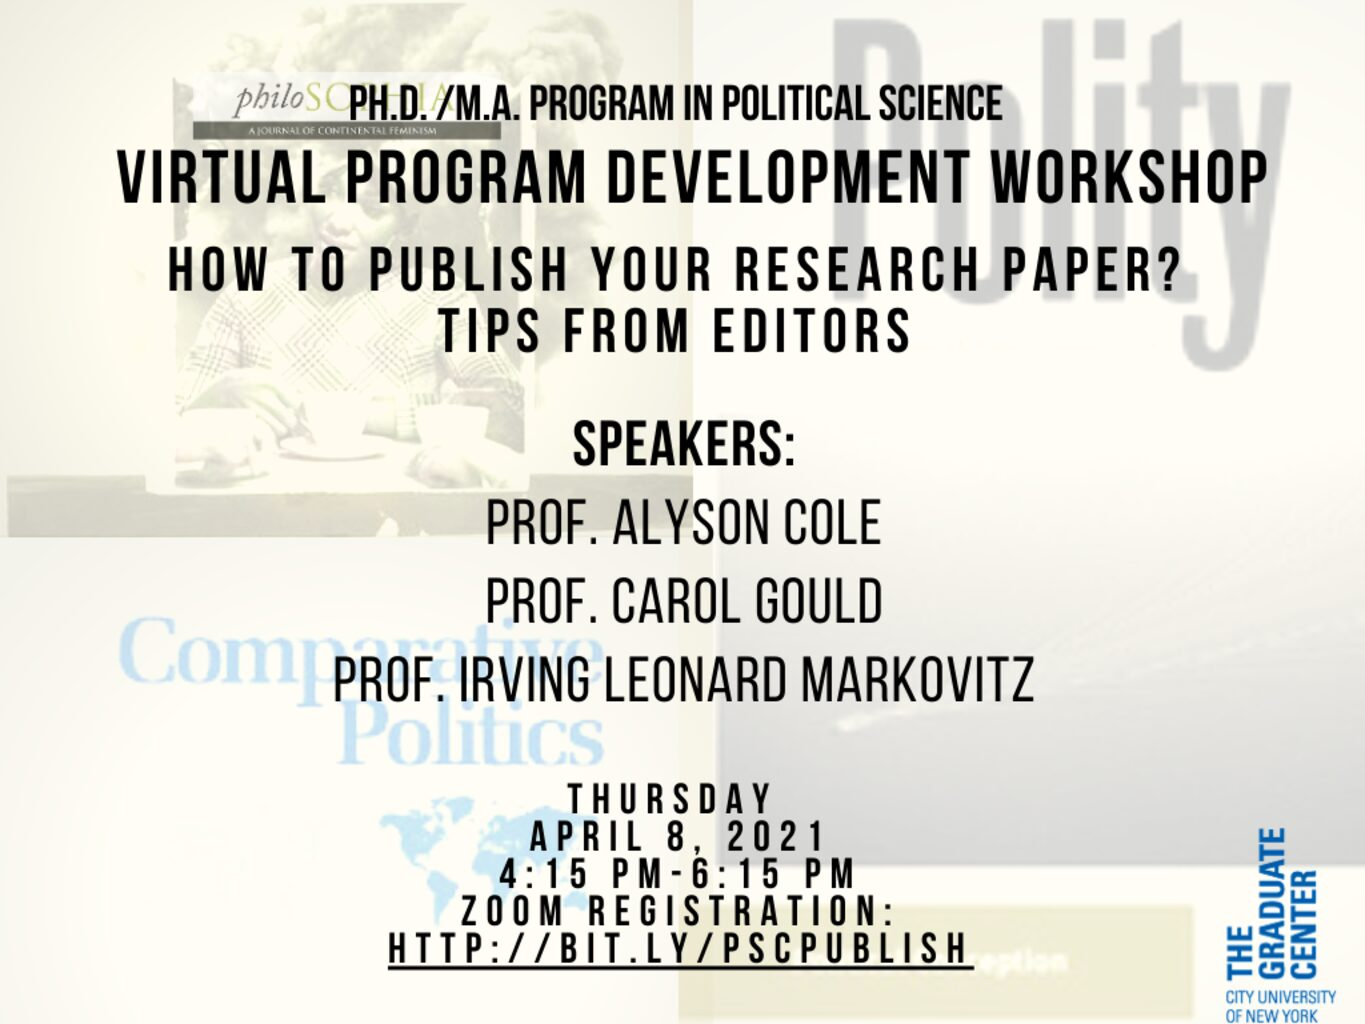 """Professional Development Workshop: """"How to Publish Your Research Paper? Tips From Editors"""" Thursday, April 8, 4:15pm"""